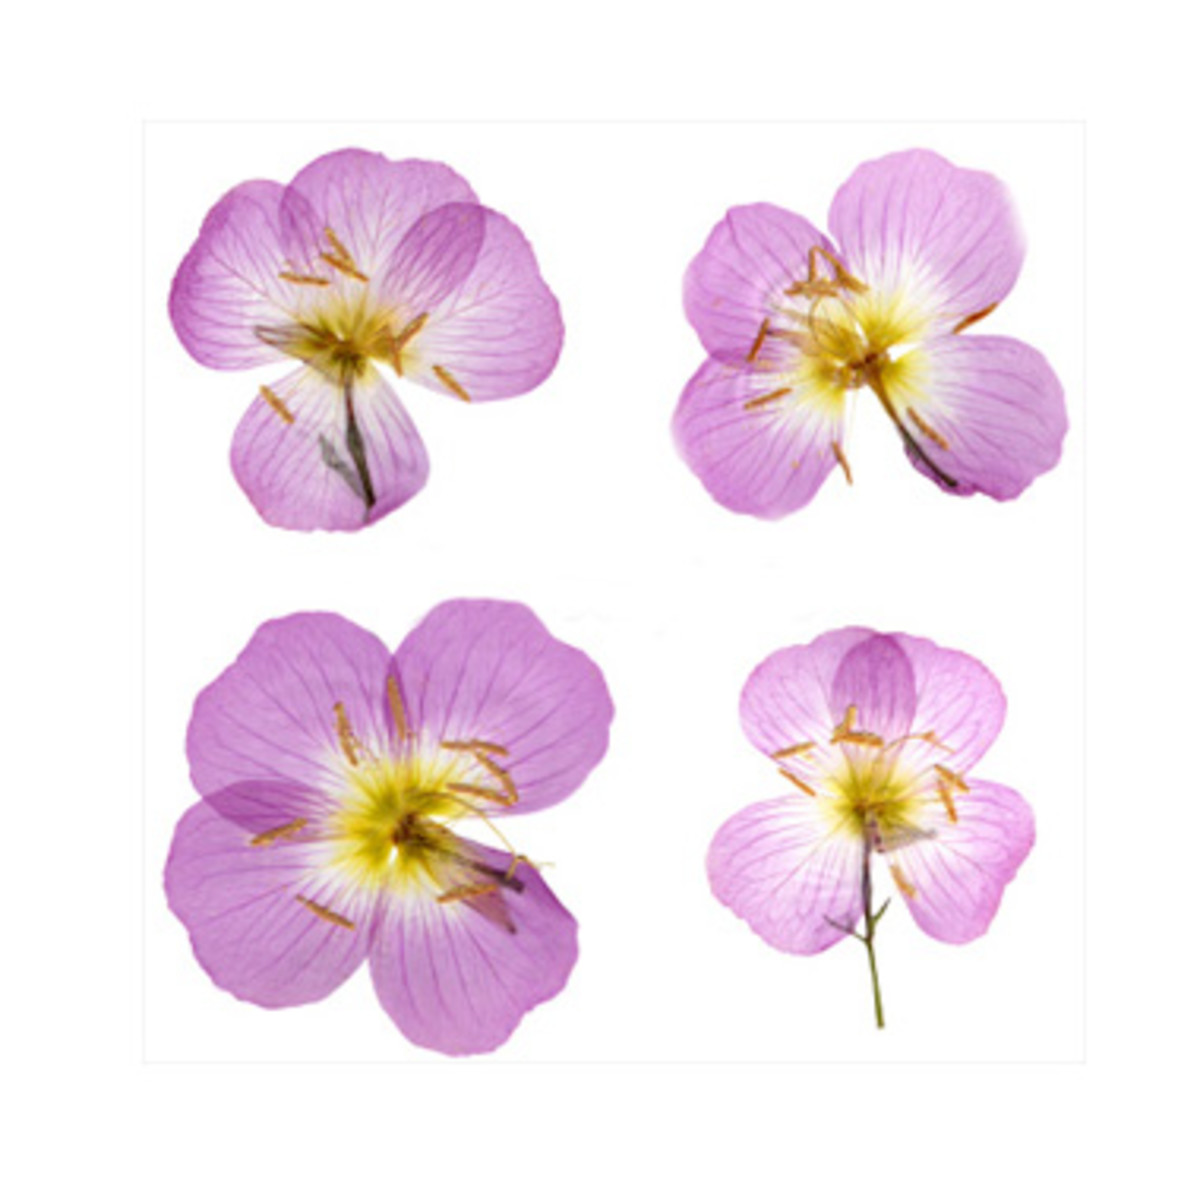 Flowers with less bulky stems and buds press much better and can achieve a papery thinness.